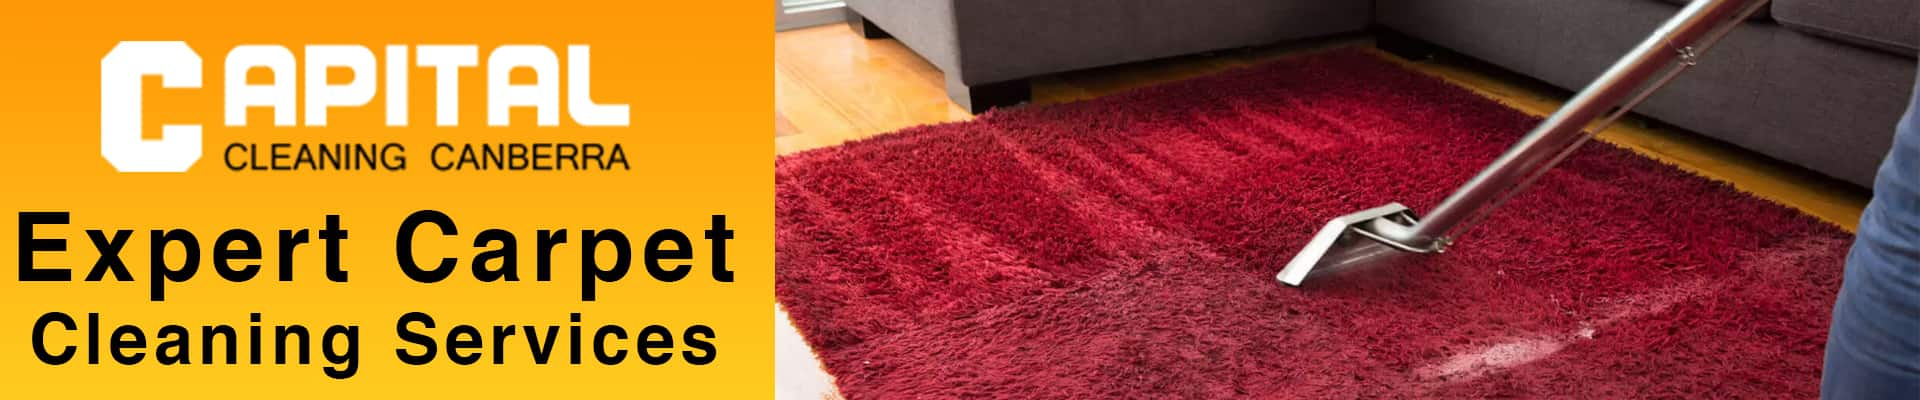 Expert Carpet Cleaning Services Mckellar